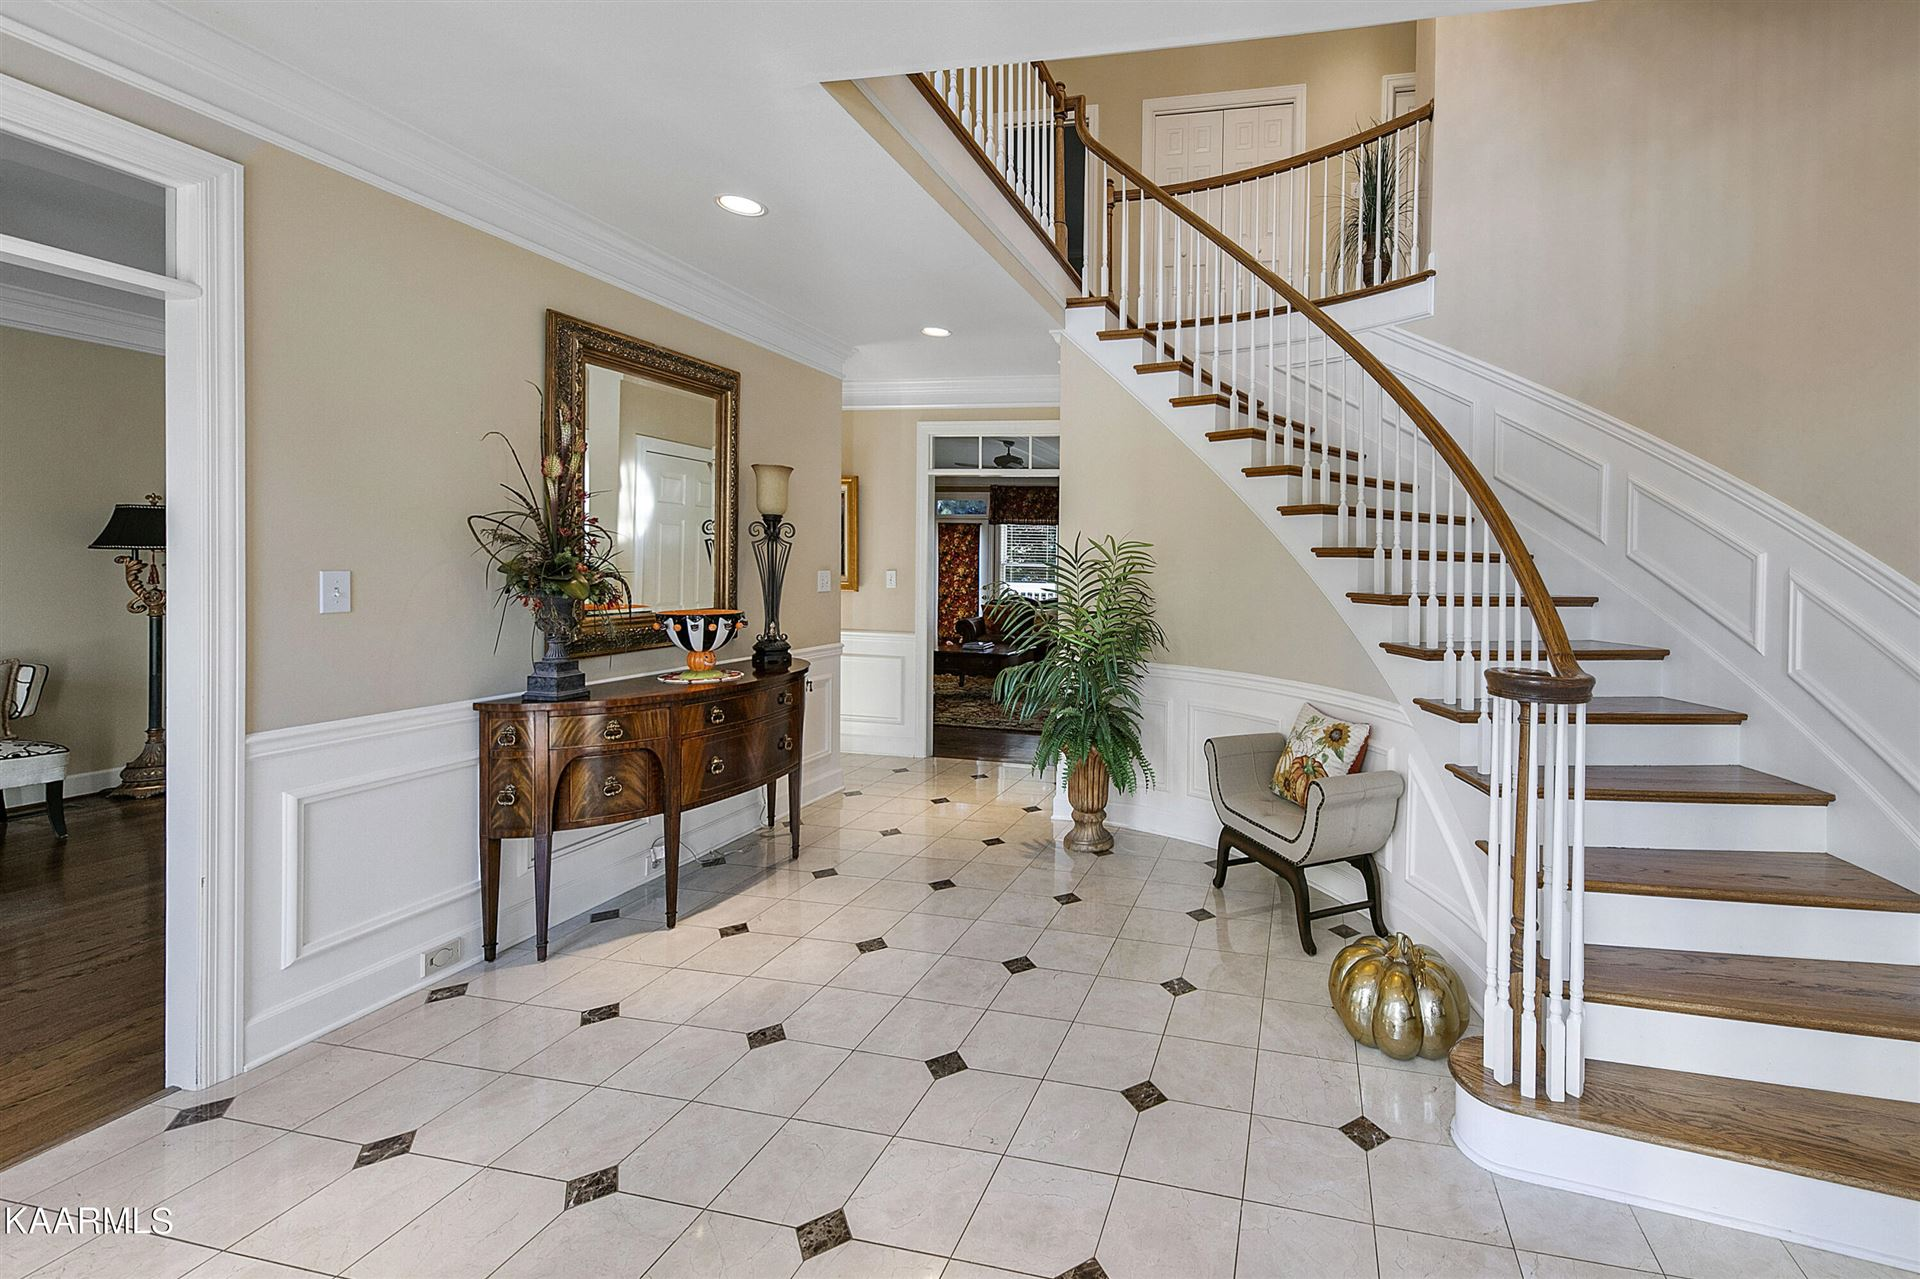 Photo of 1625 Kilmer Drive, Knoxville, TN 37922 (MLS # 1171546)